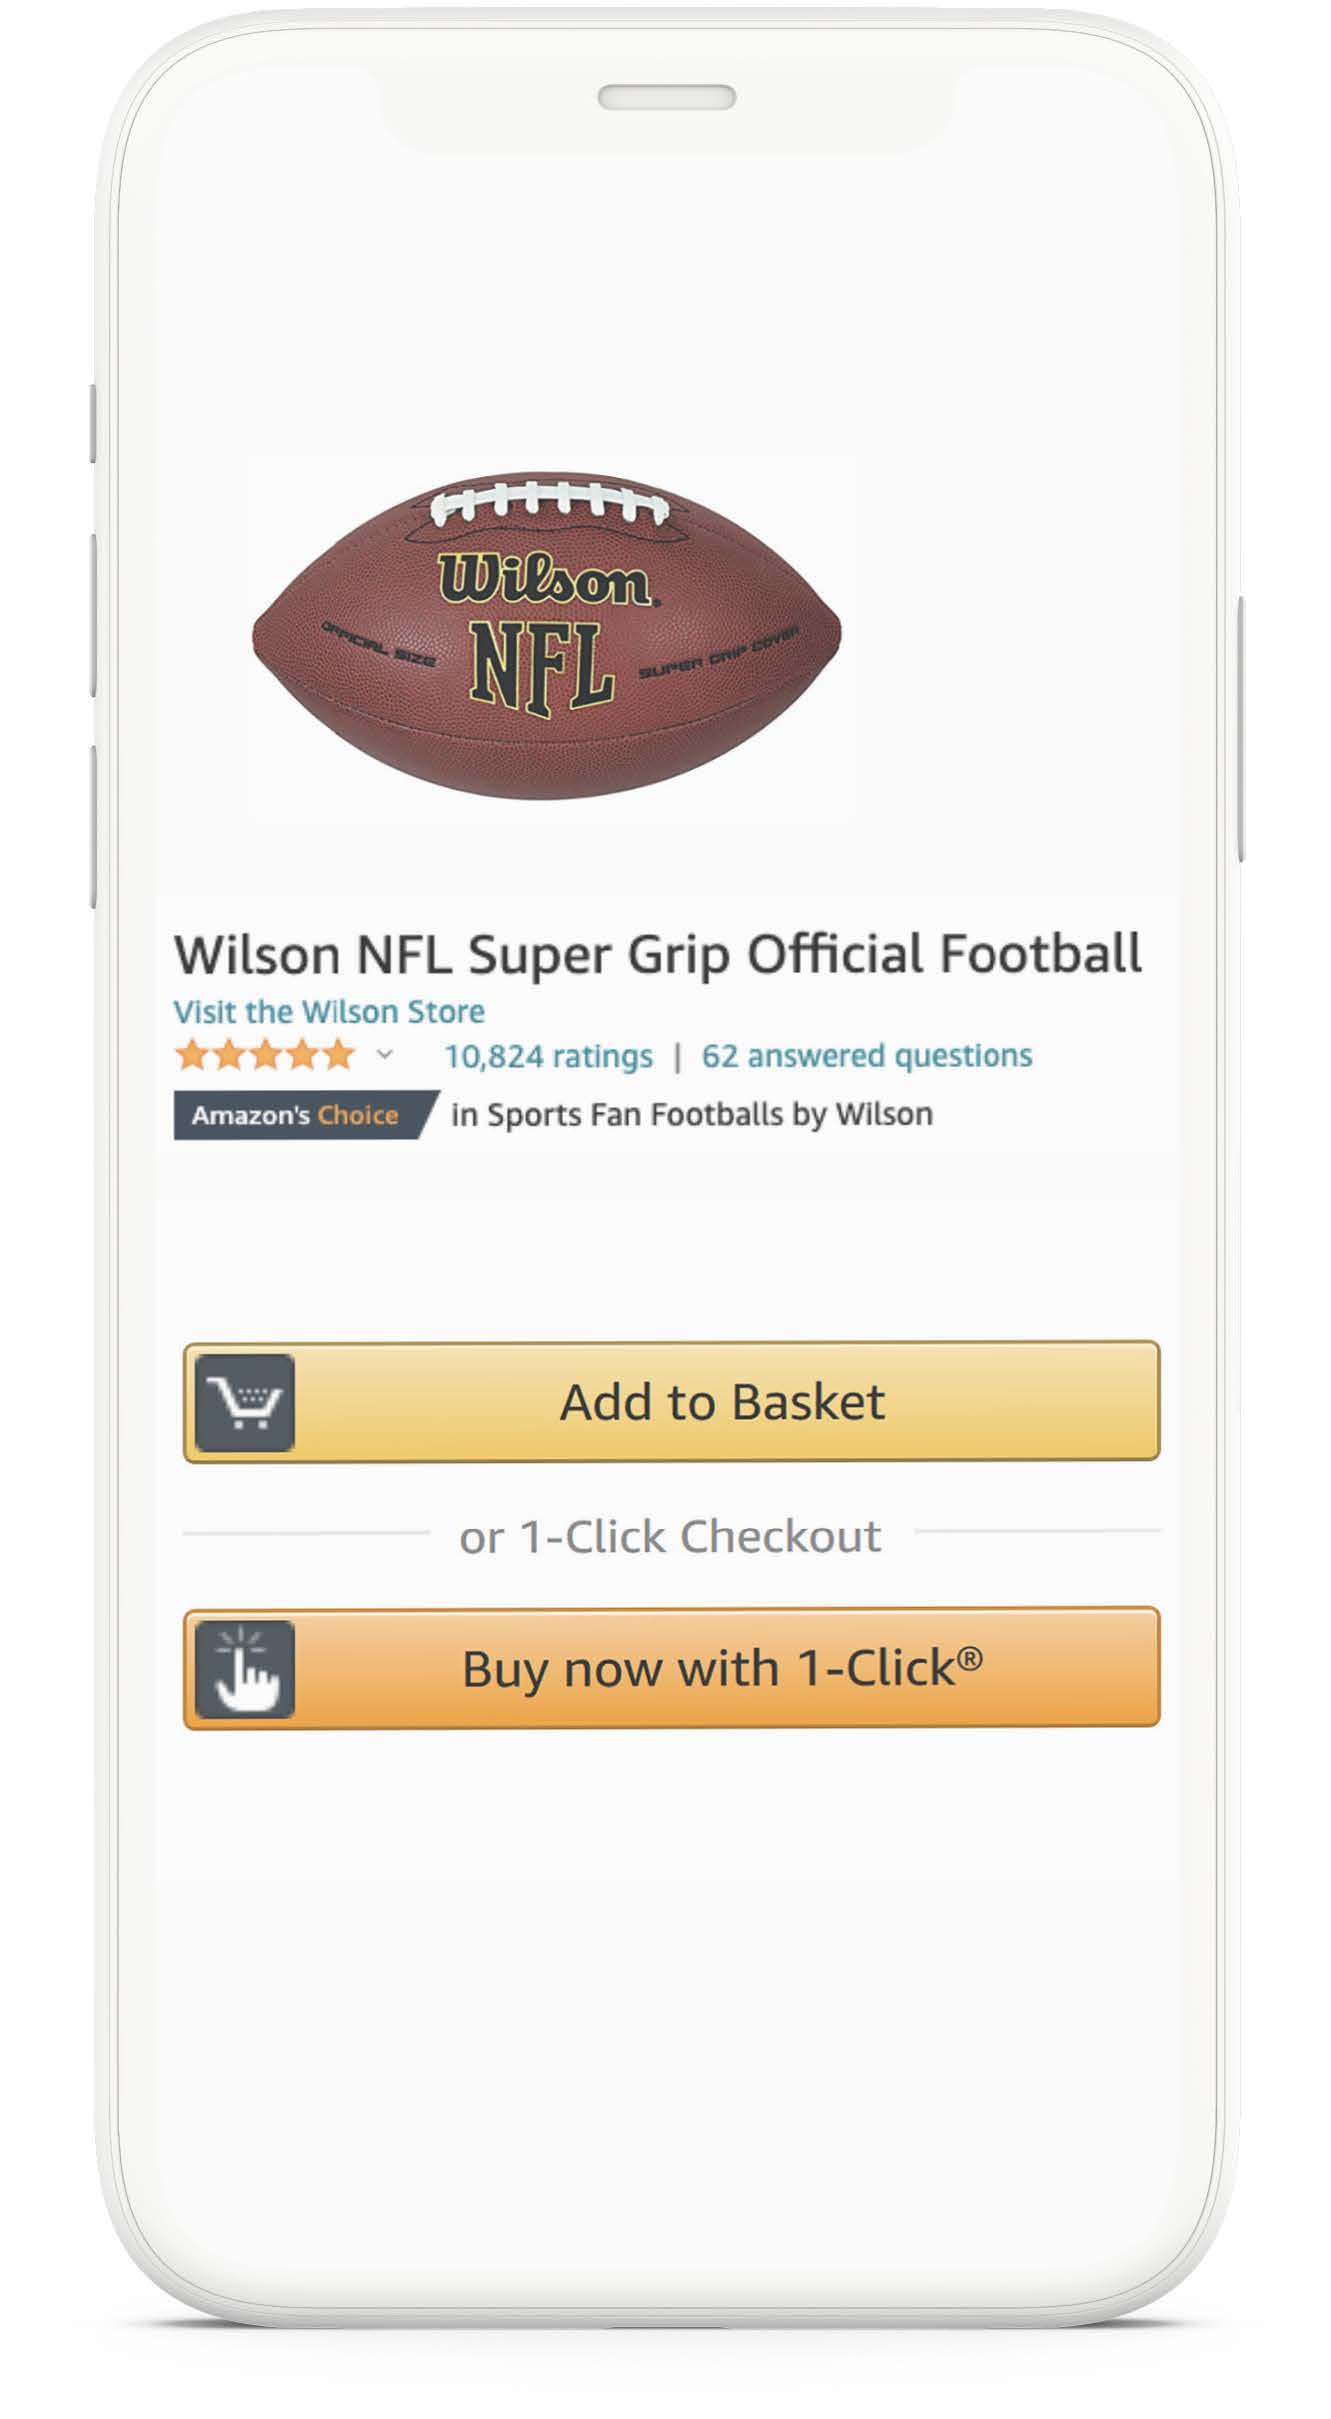 Amazon one-click purchase